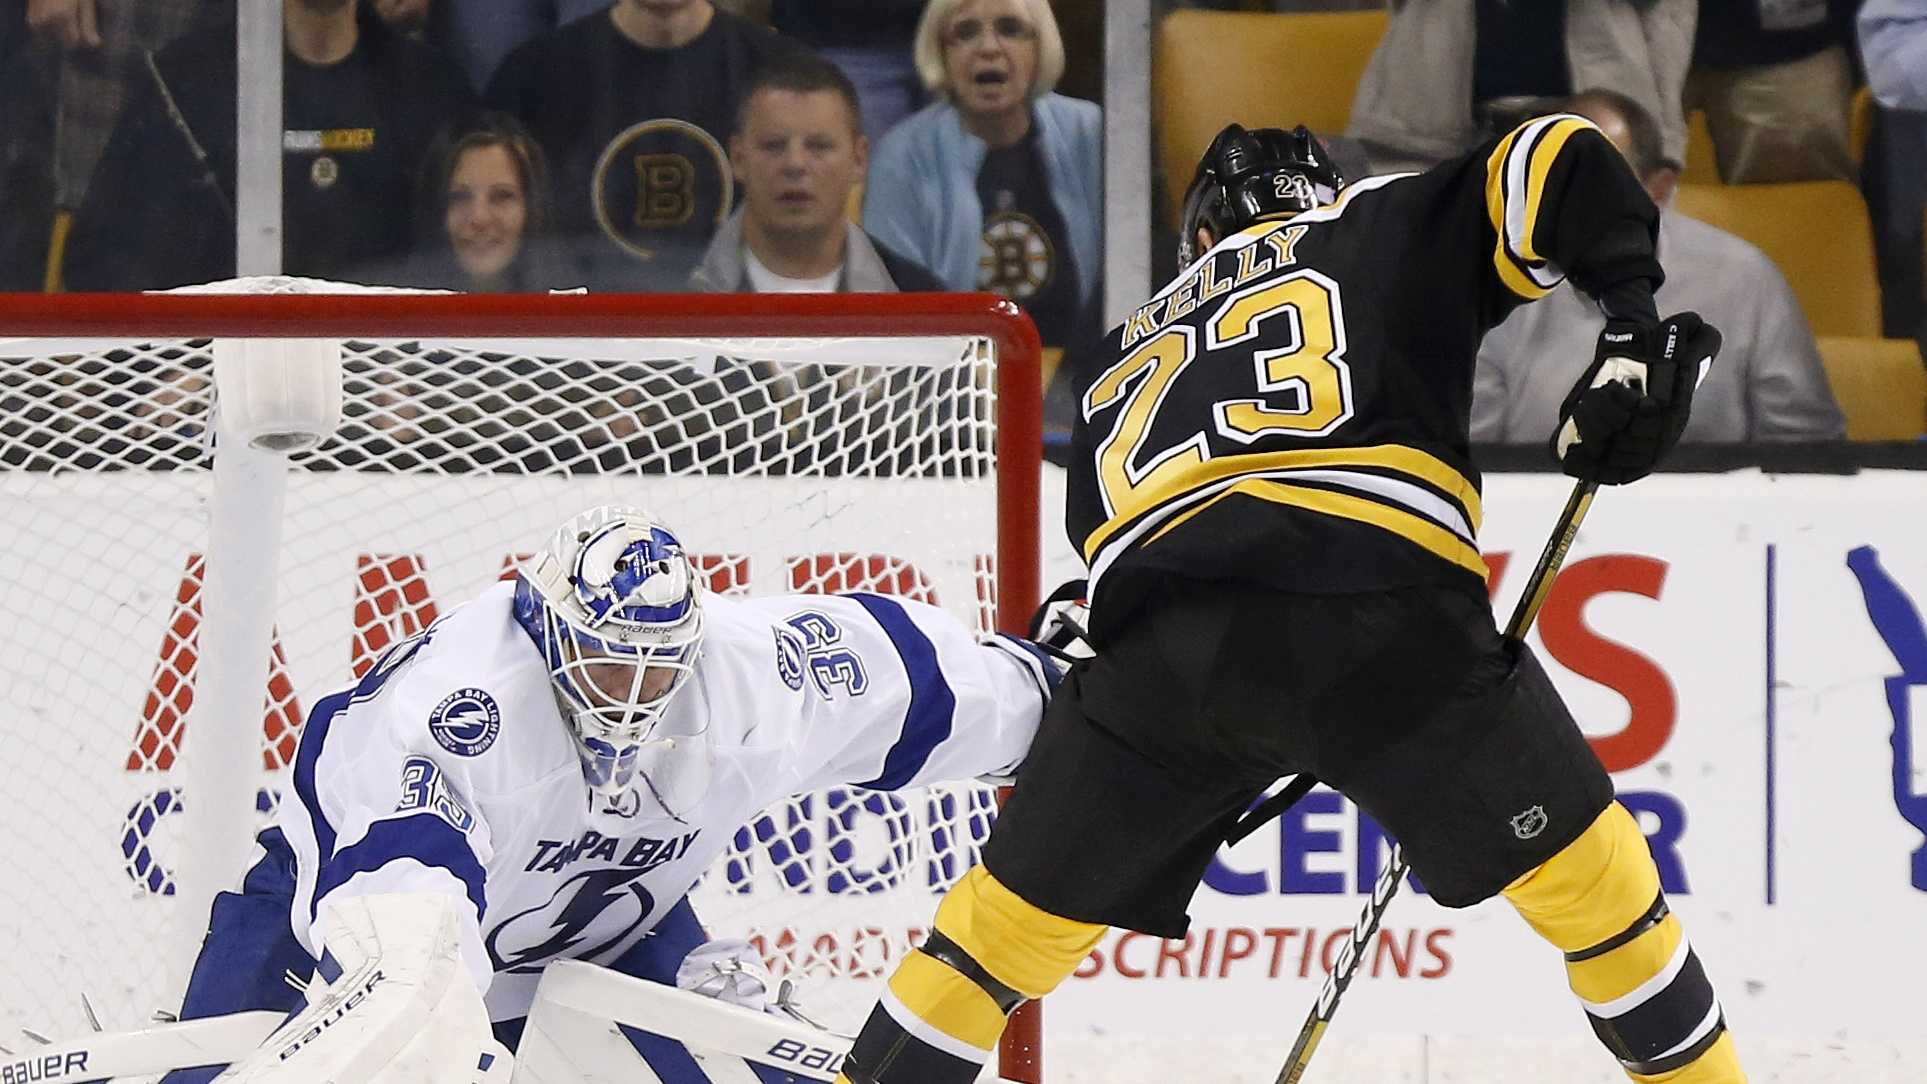 Boston Bruins' Chris Kelly (23) sets up to score on a penalty shot against Tampa Bay Lightning's Anders Lindback in the first period of an NHL hockey game in Boston, Oct. 3, 2013.